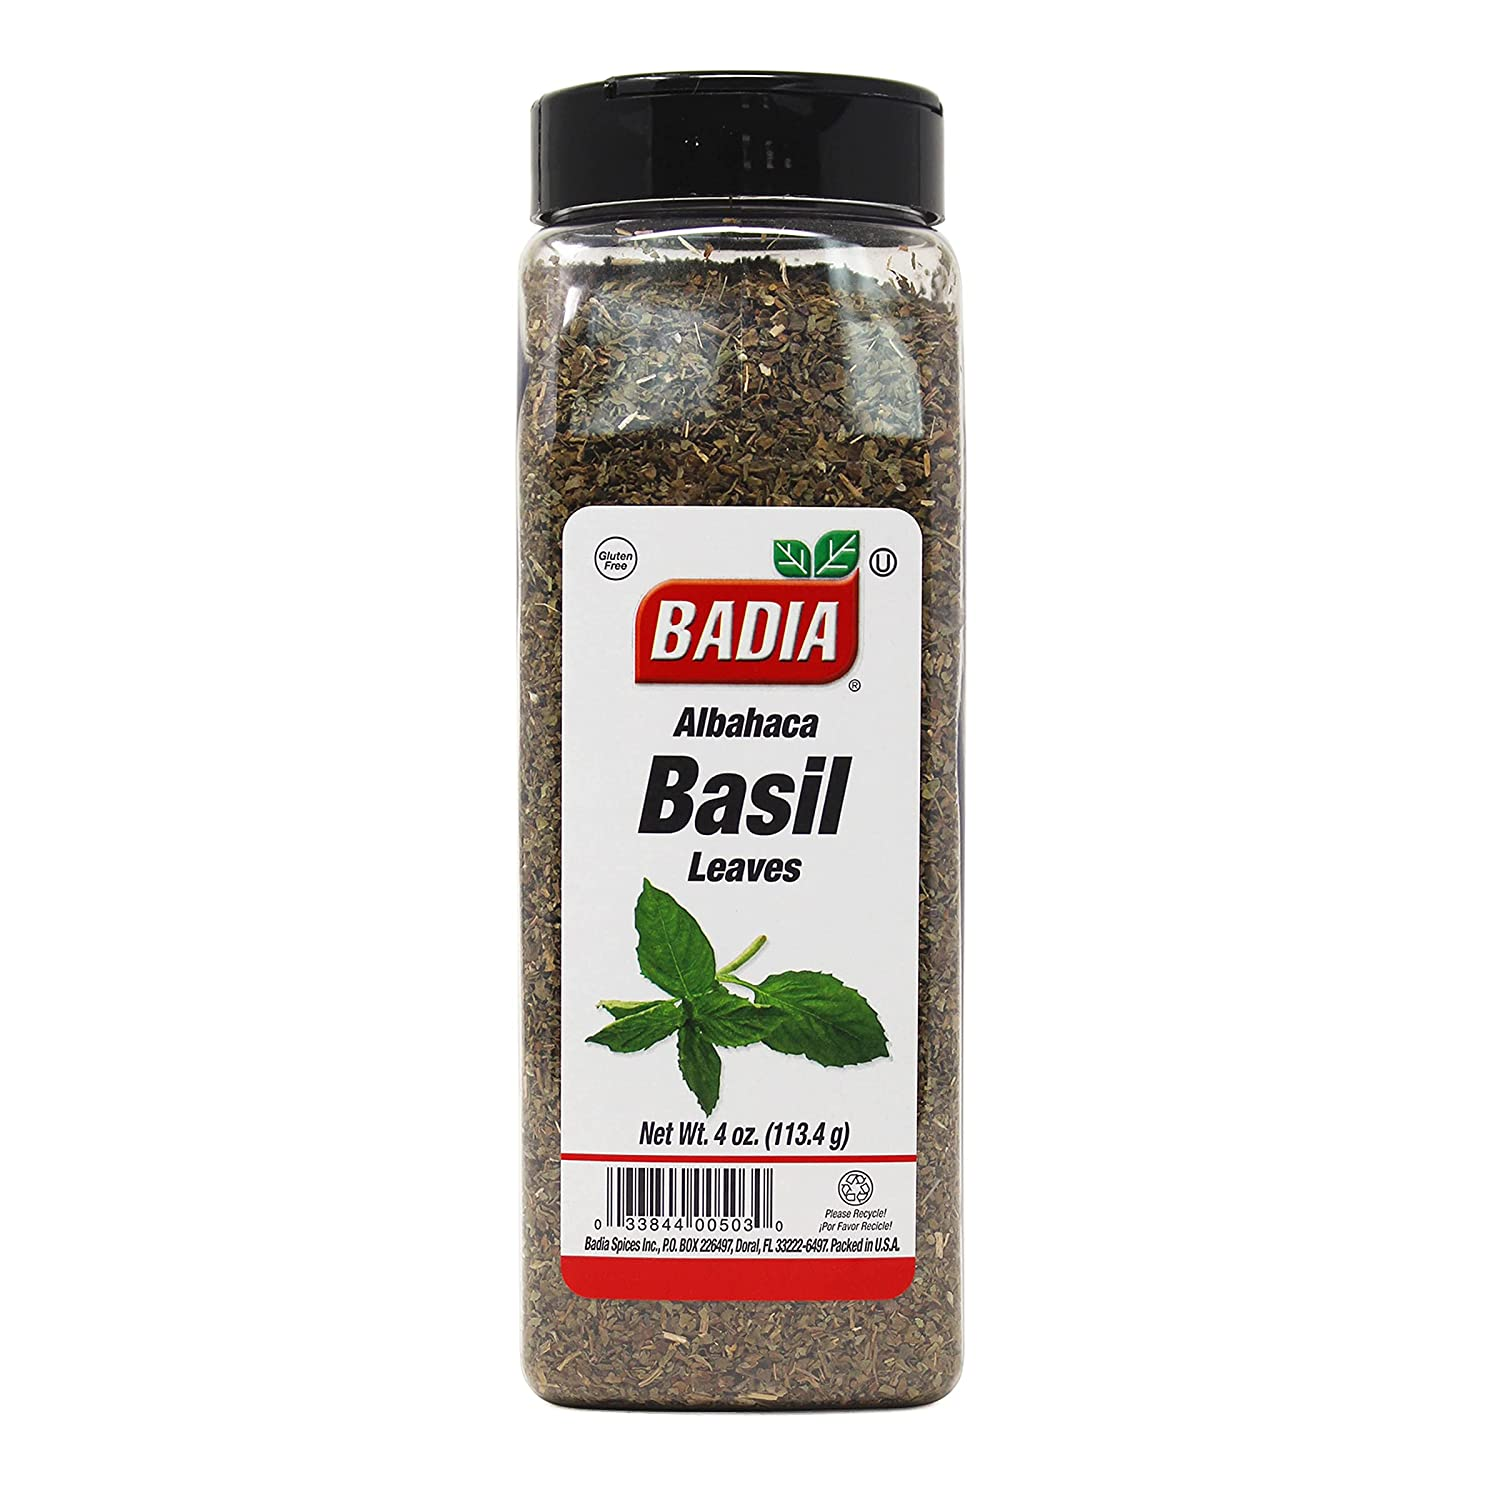 Badia Max 45% OFF Basil 4 Ounce Pack of Limited time for free shipping 6